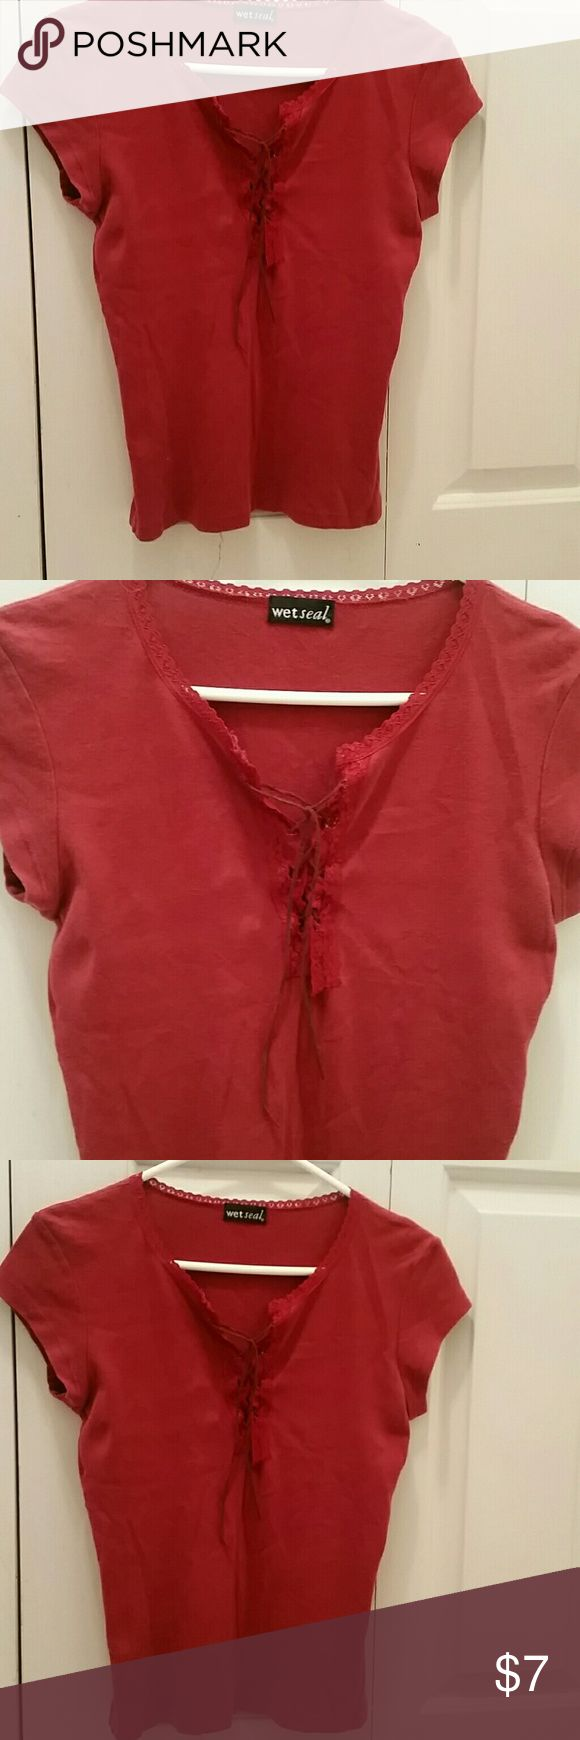 VERY SEXY TEE!   PICS DO NOT DO JUSTICE!   The red Wet Seal t-shirt will easily fit any woman from a size medium to size large. It is absolutely precious and very sexy with its  laced lined neck and sleeves as well as in the middle, where, I tried to show with pictures, it laces up with leather that is trimmed in lace, as well. The shirt is way too cute! Just too big Wet Seal Tops Tees - Short Sleeve